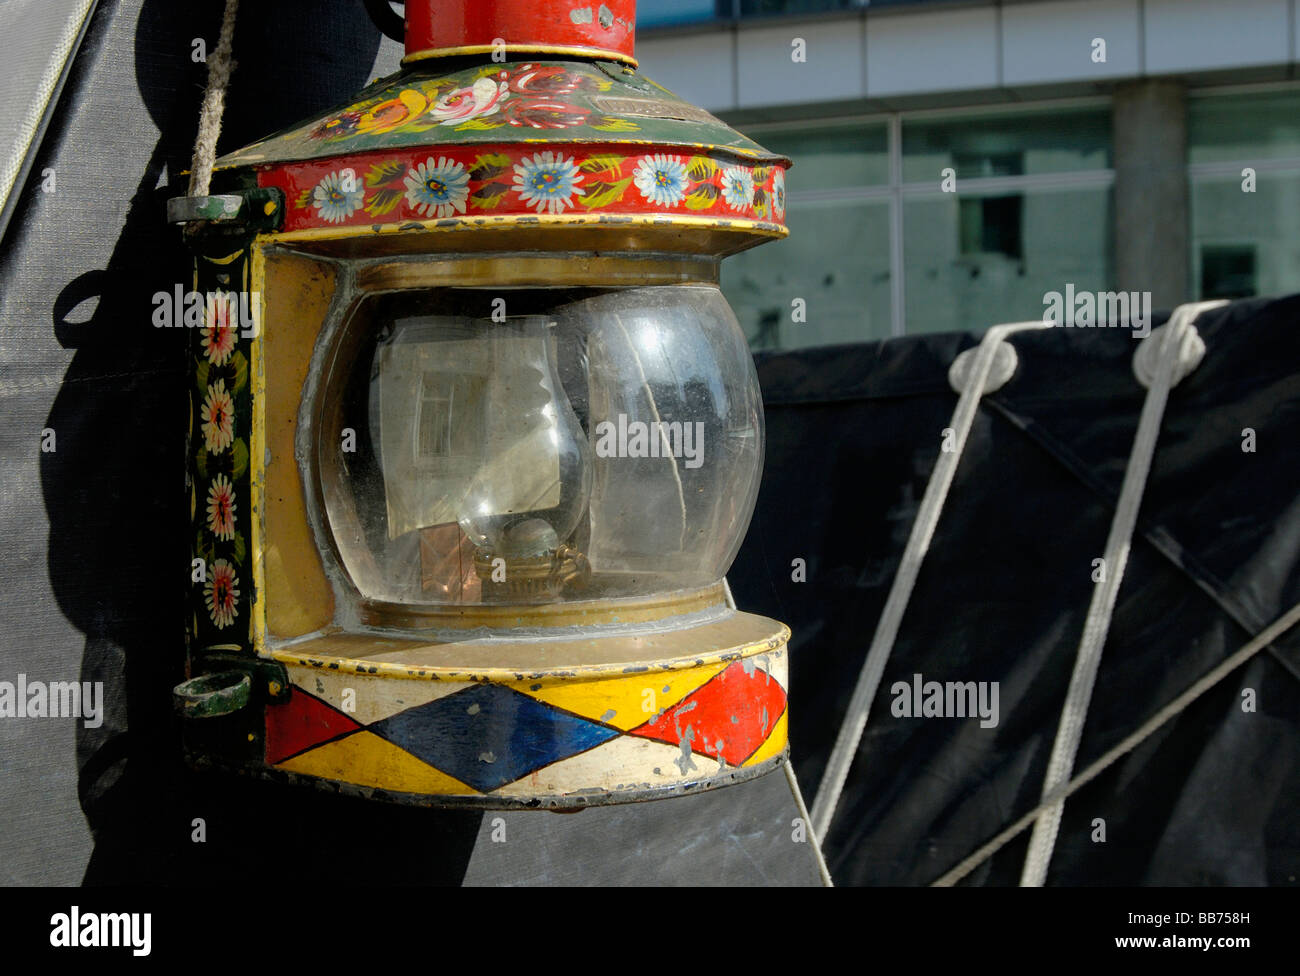 Traditional paraffin tunnel lamp painted with flowers and diamonds on cratch board of a working narrowboat, London, - Stock Image